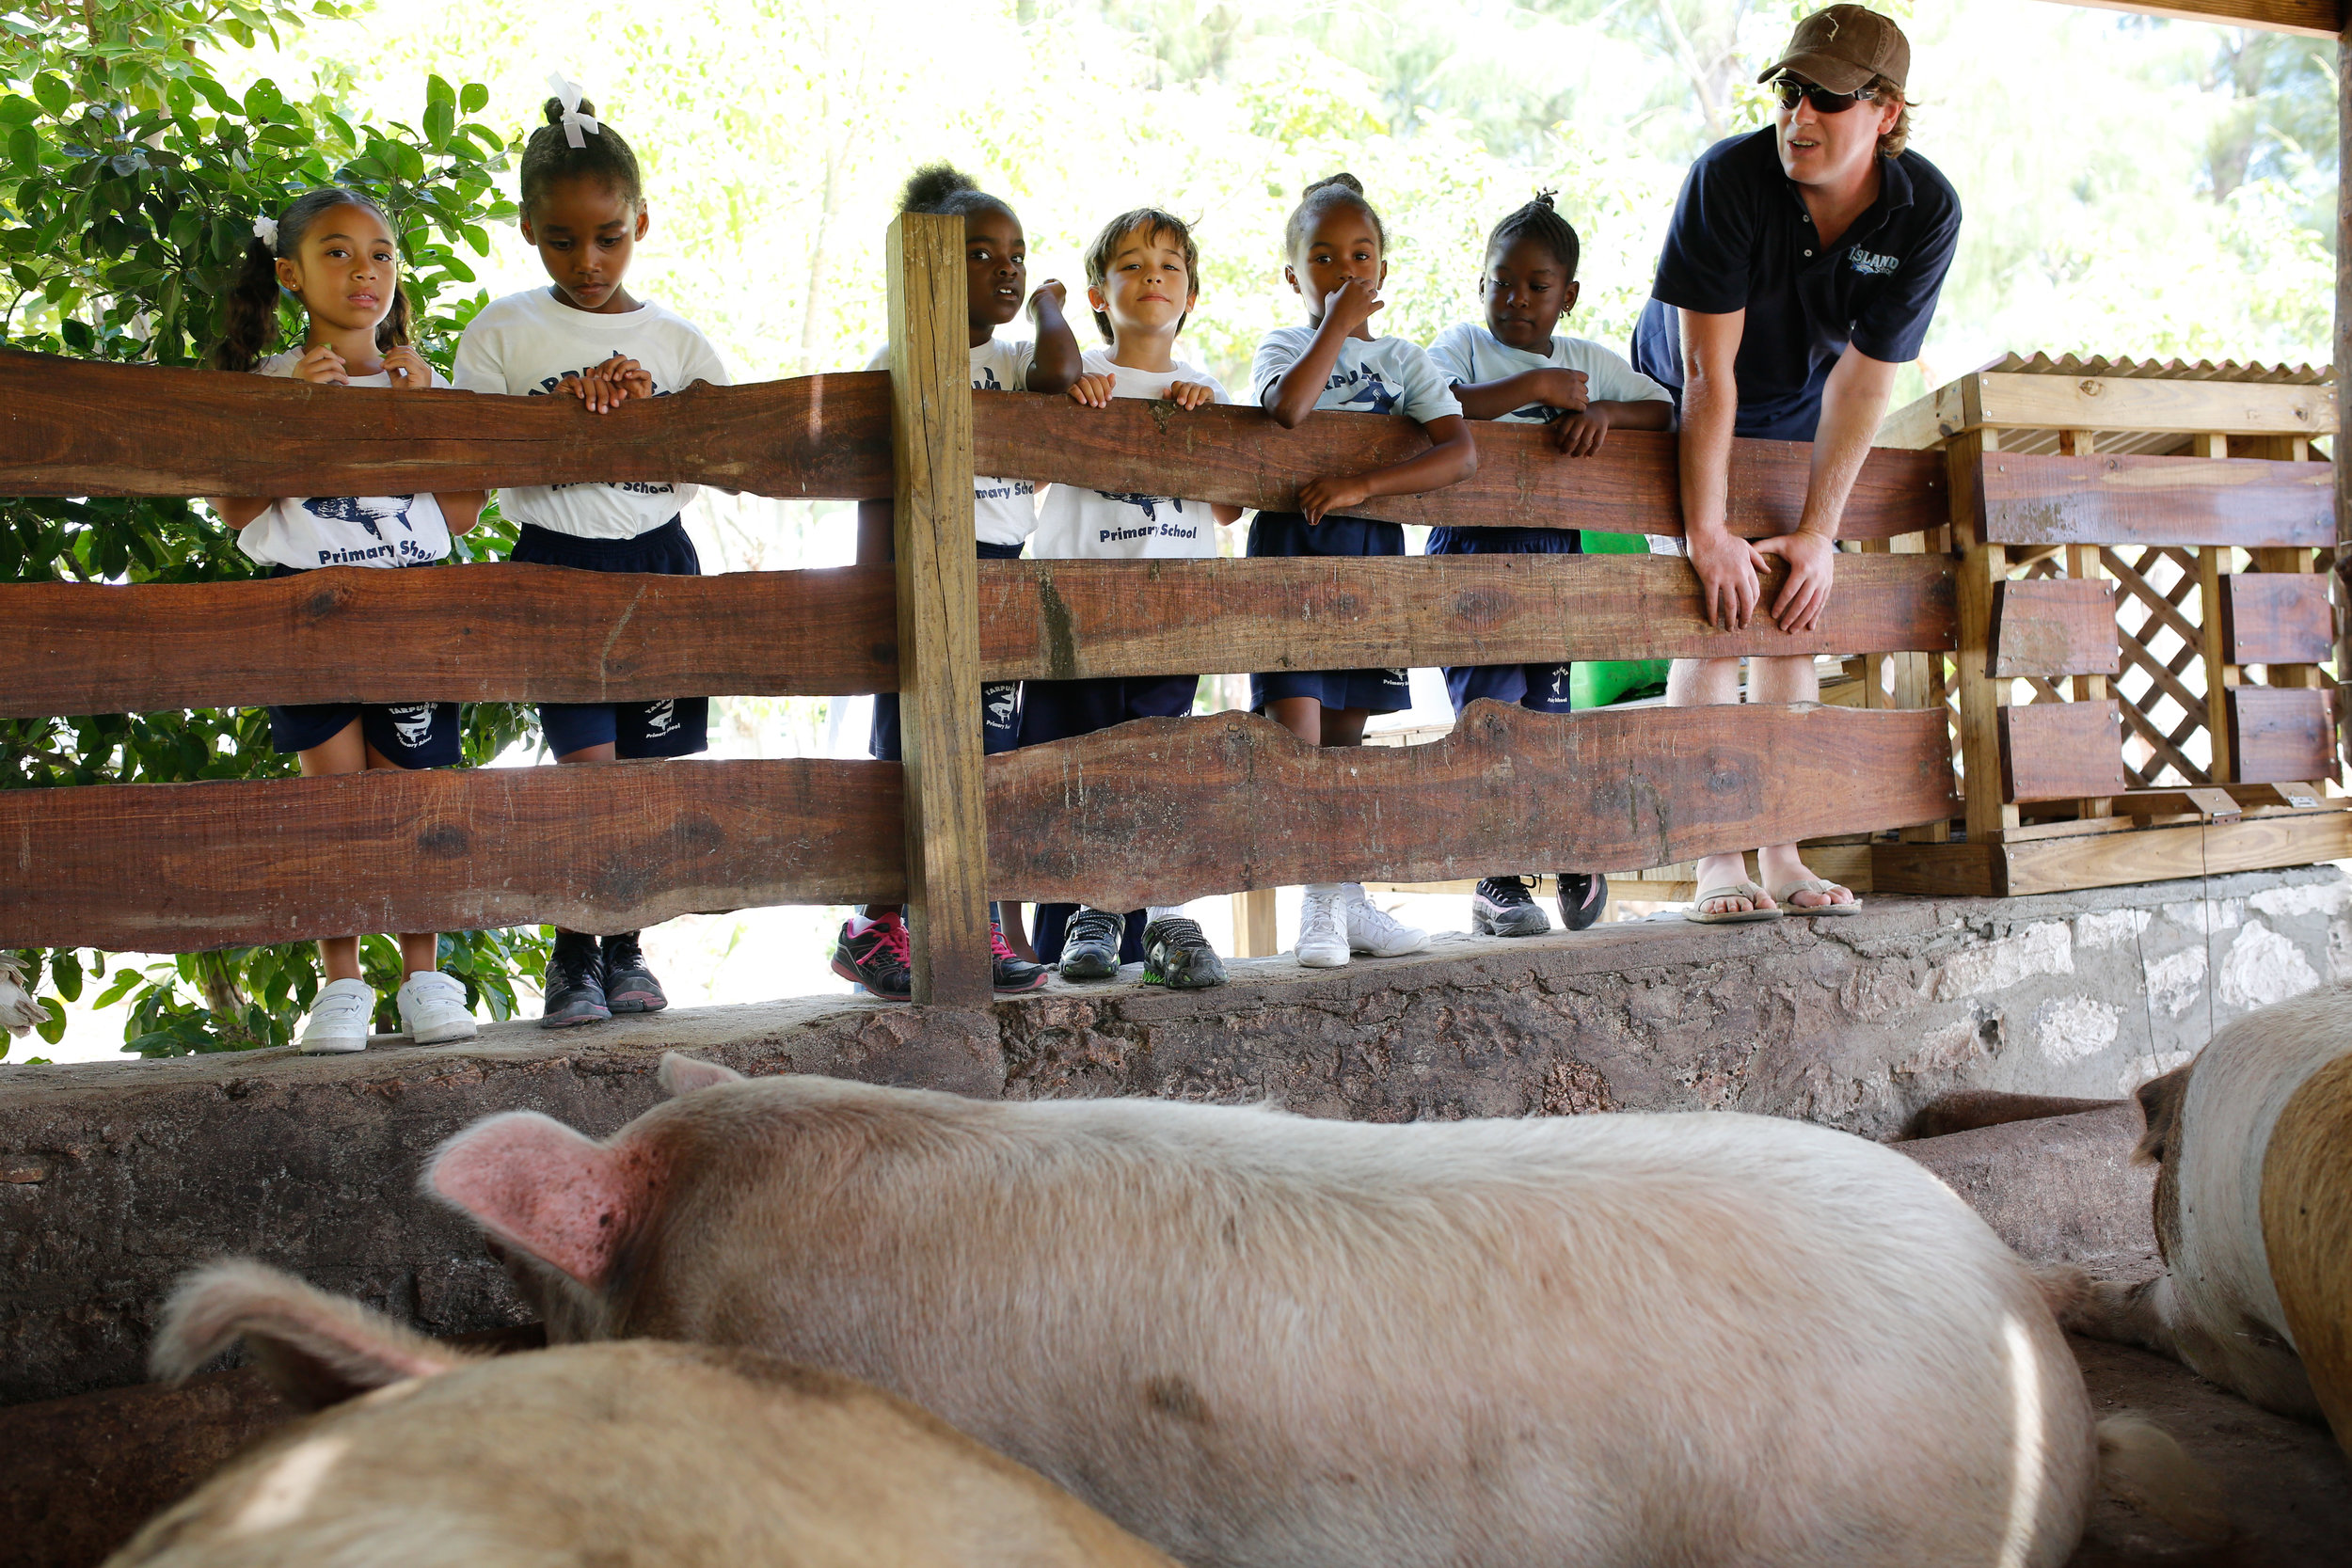 The kids explored the farm and got to feed the pigs